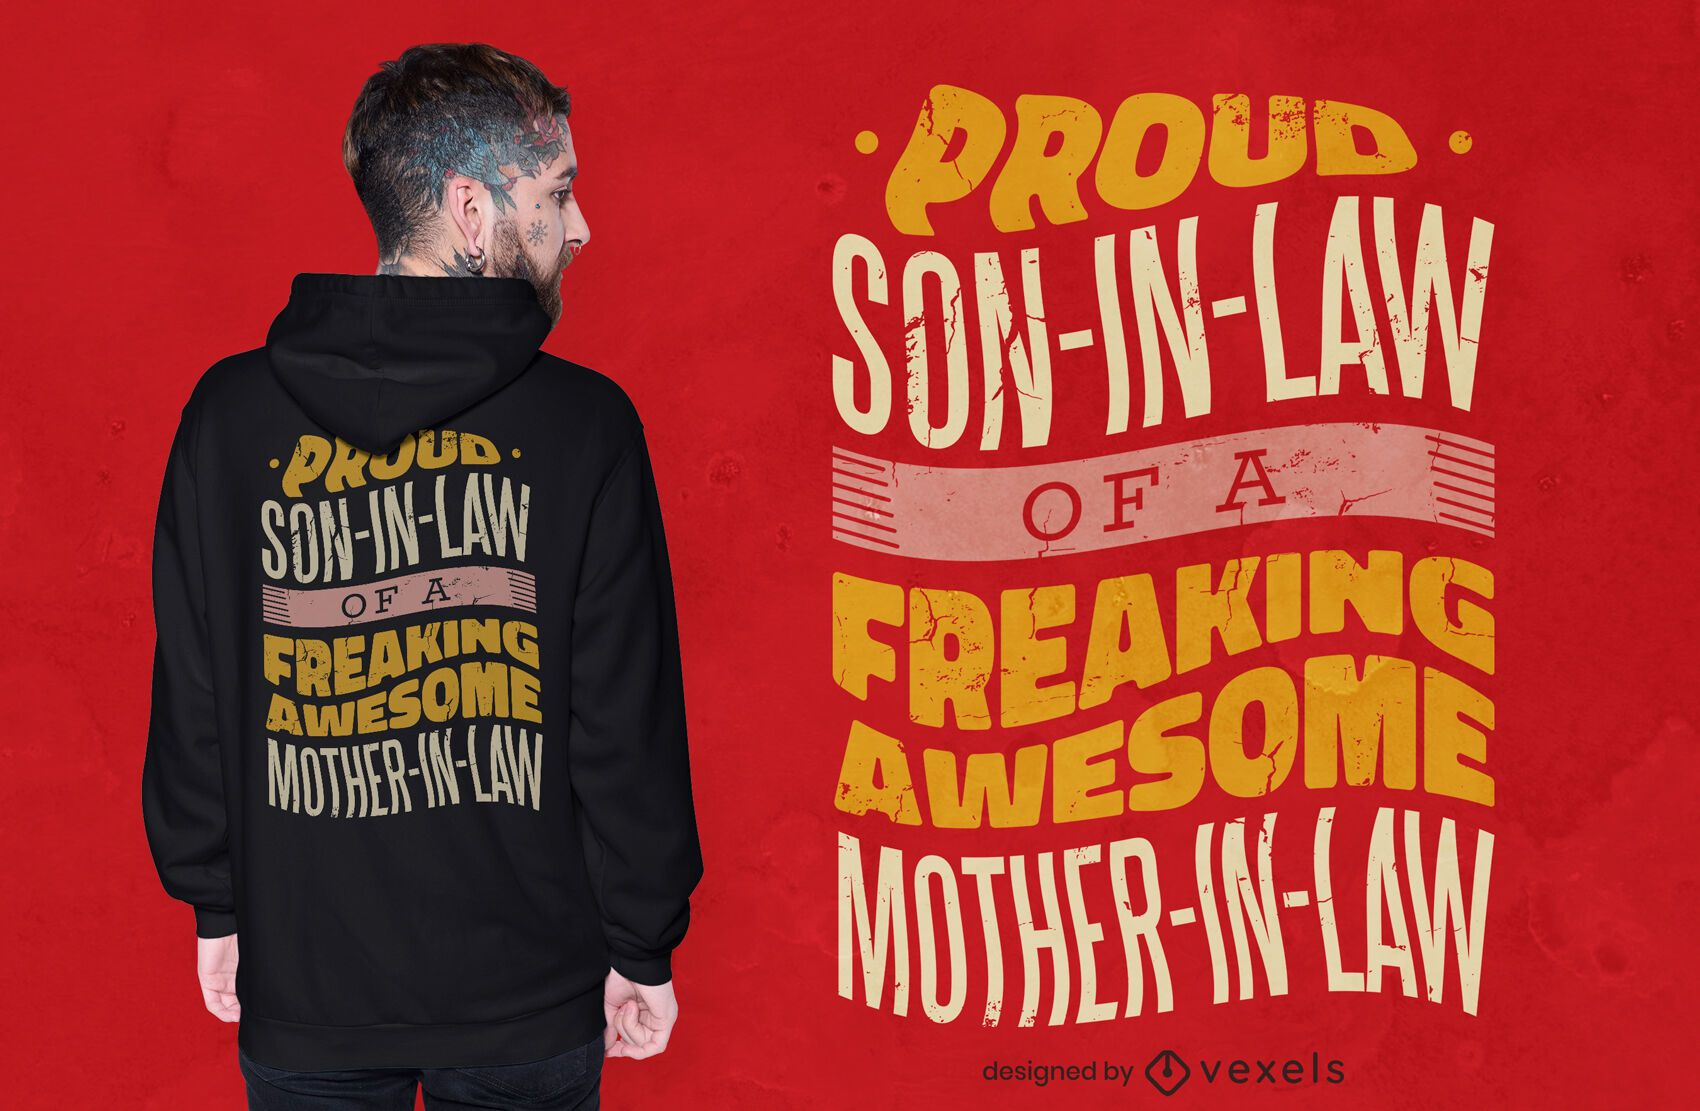 Son-in-law t-shirt design